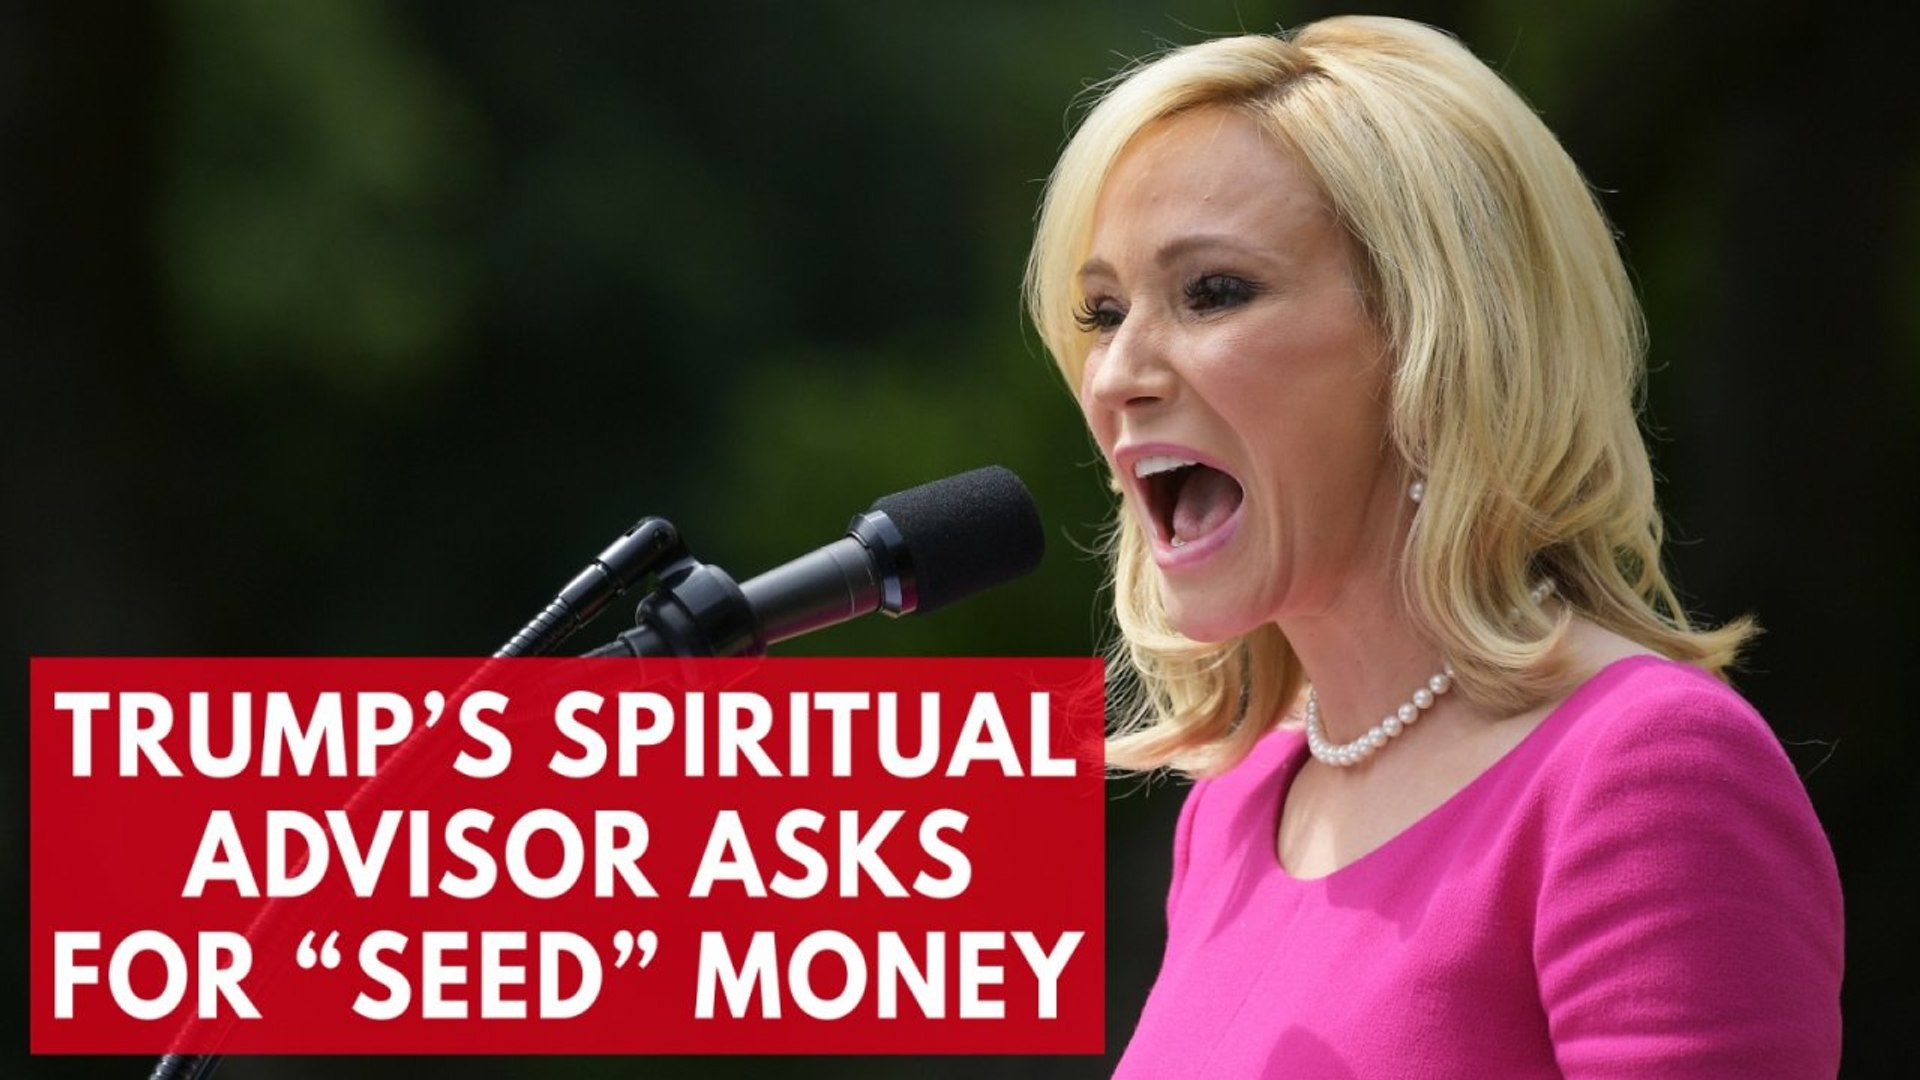 Trump's spiritual adviser warns of consequences from God if followers don't send appropria